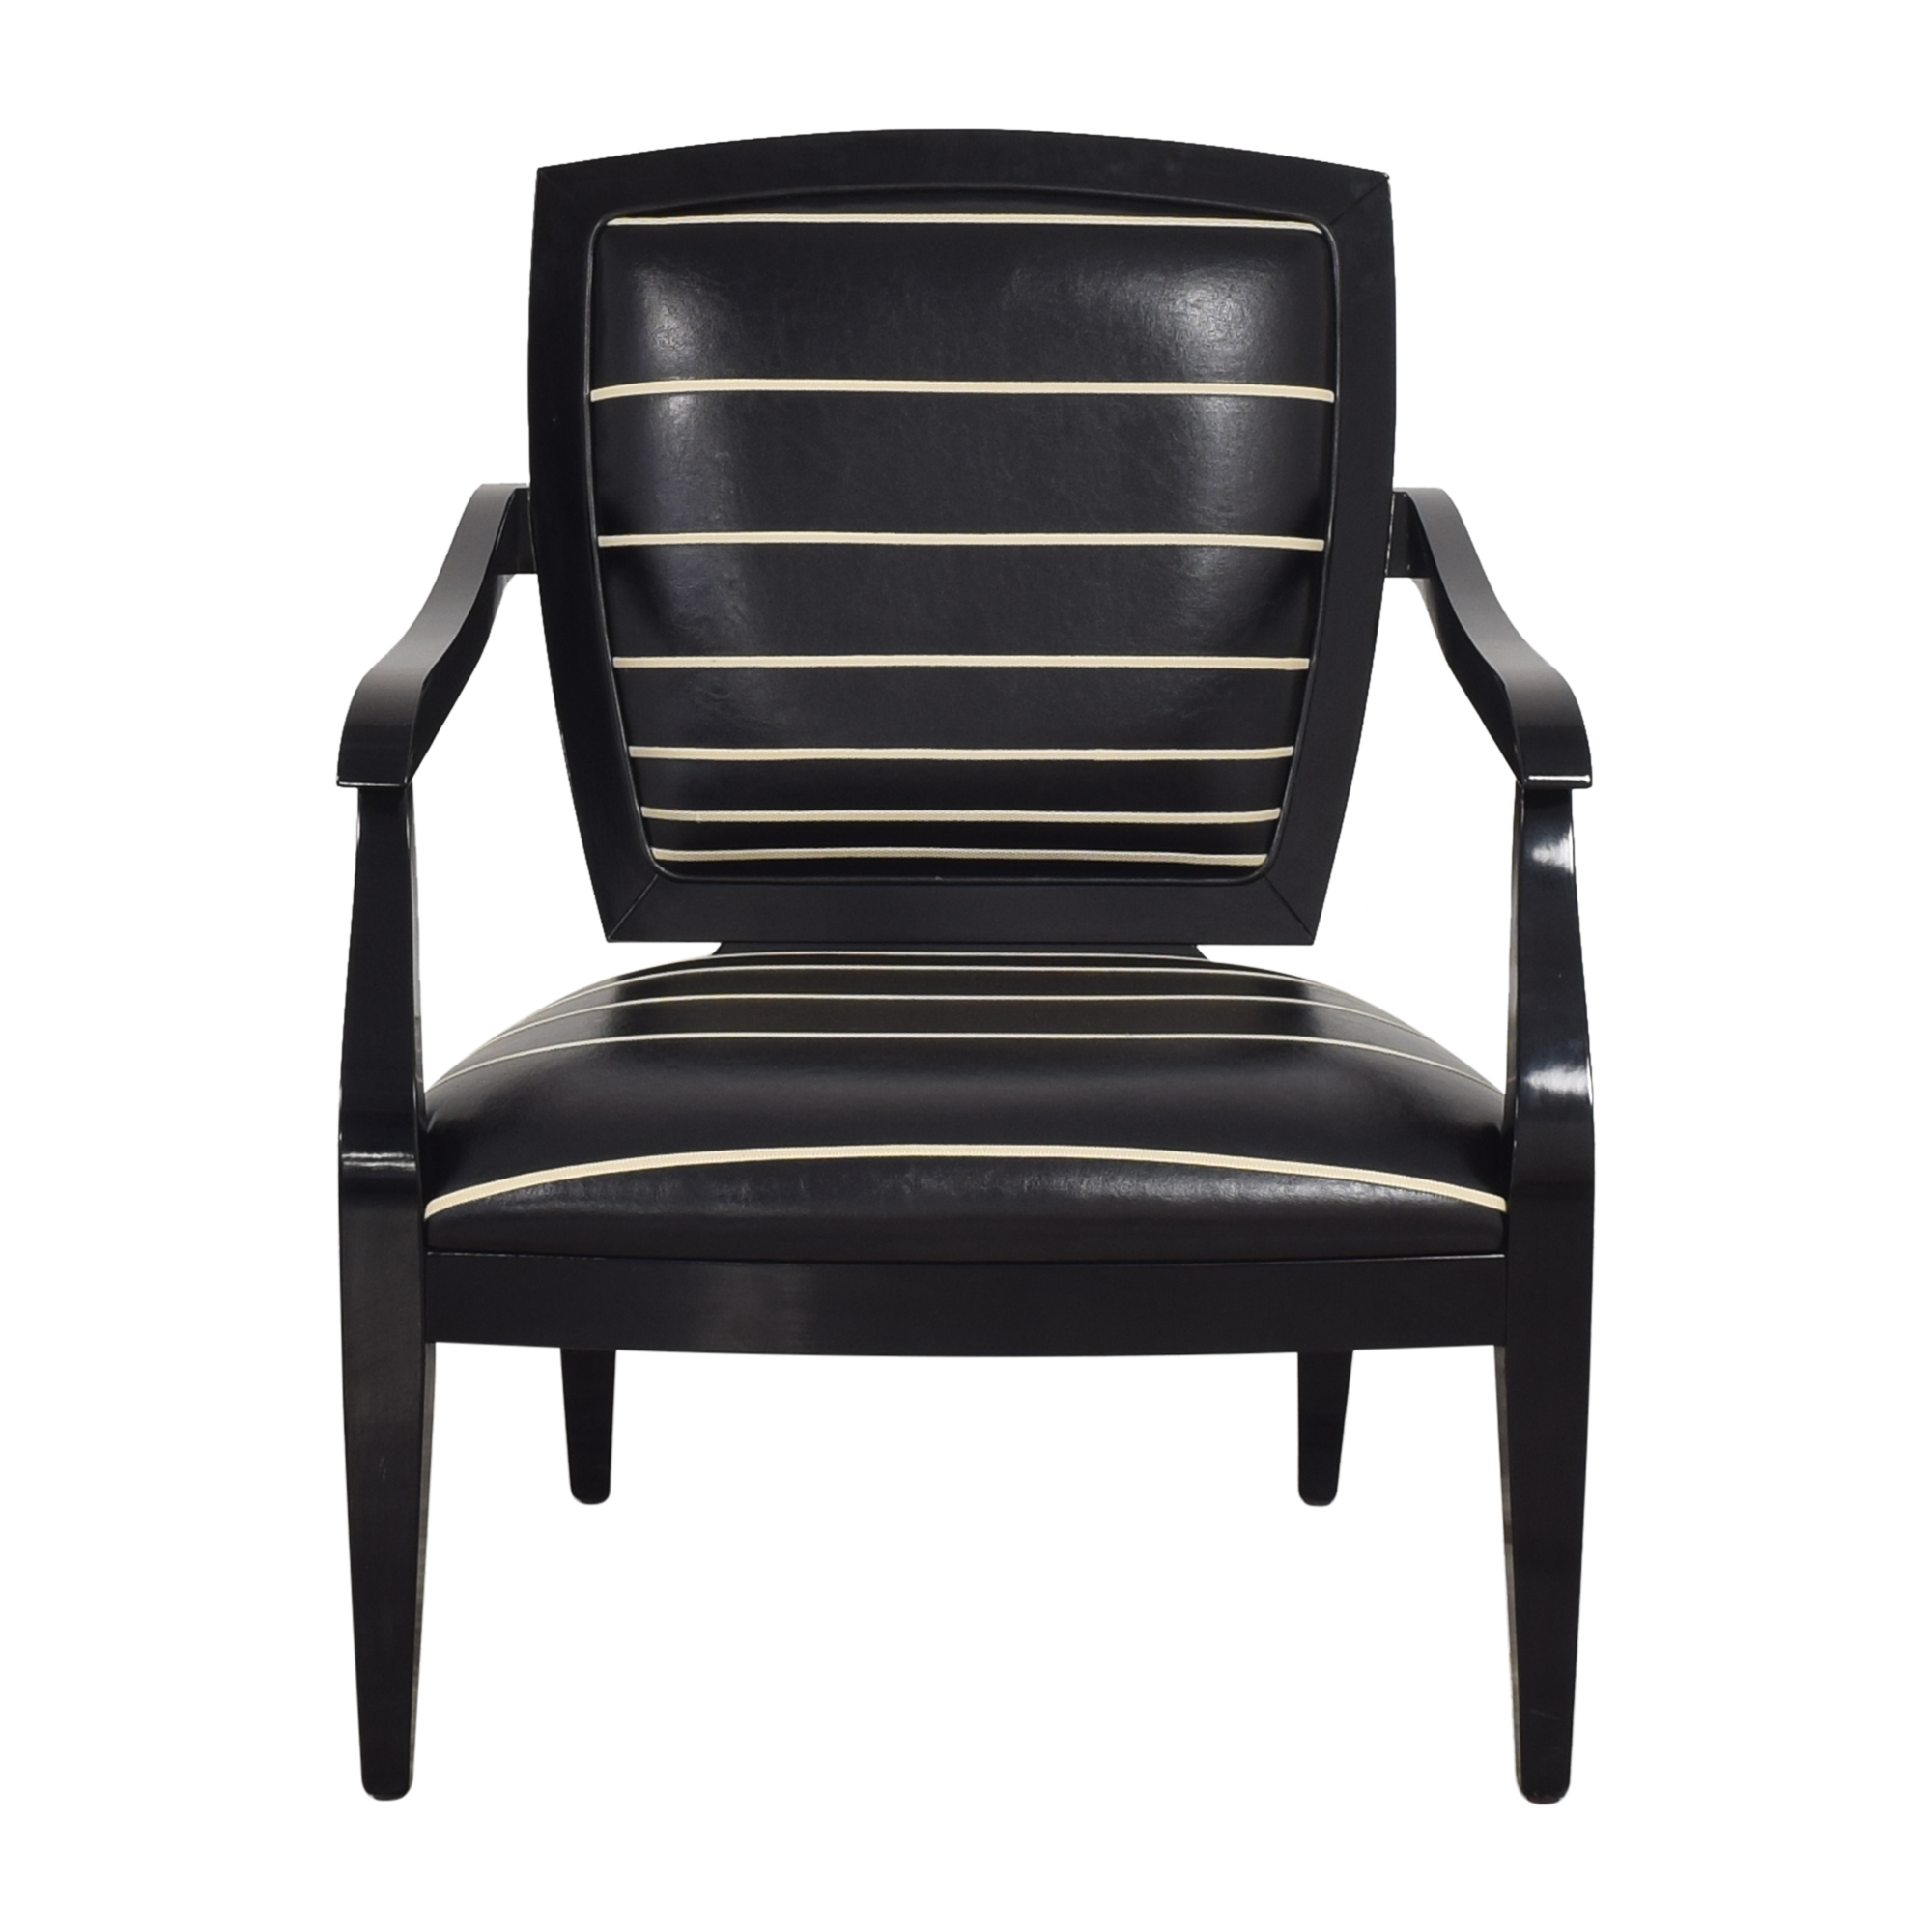 Smania Smania Striped Accent Chair used